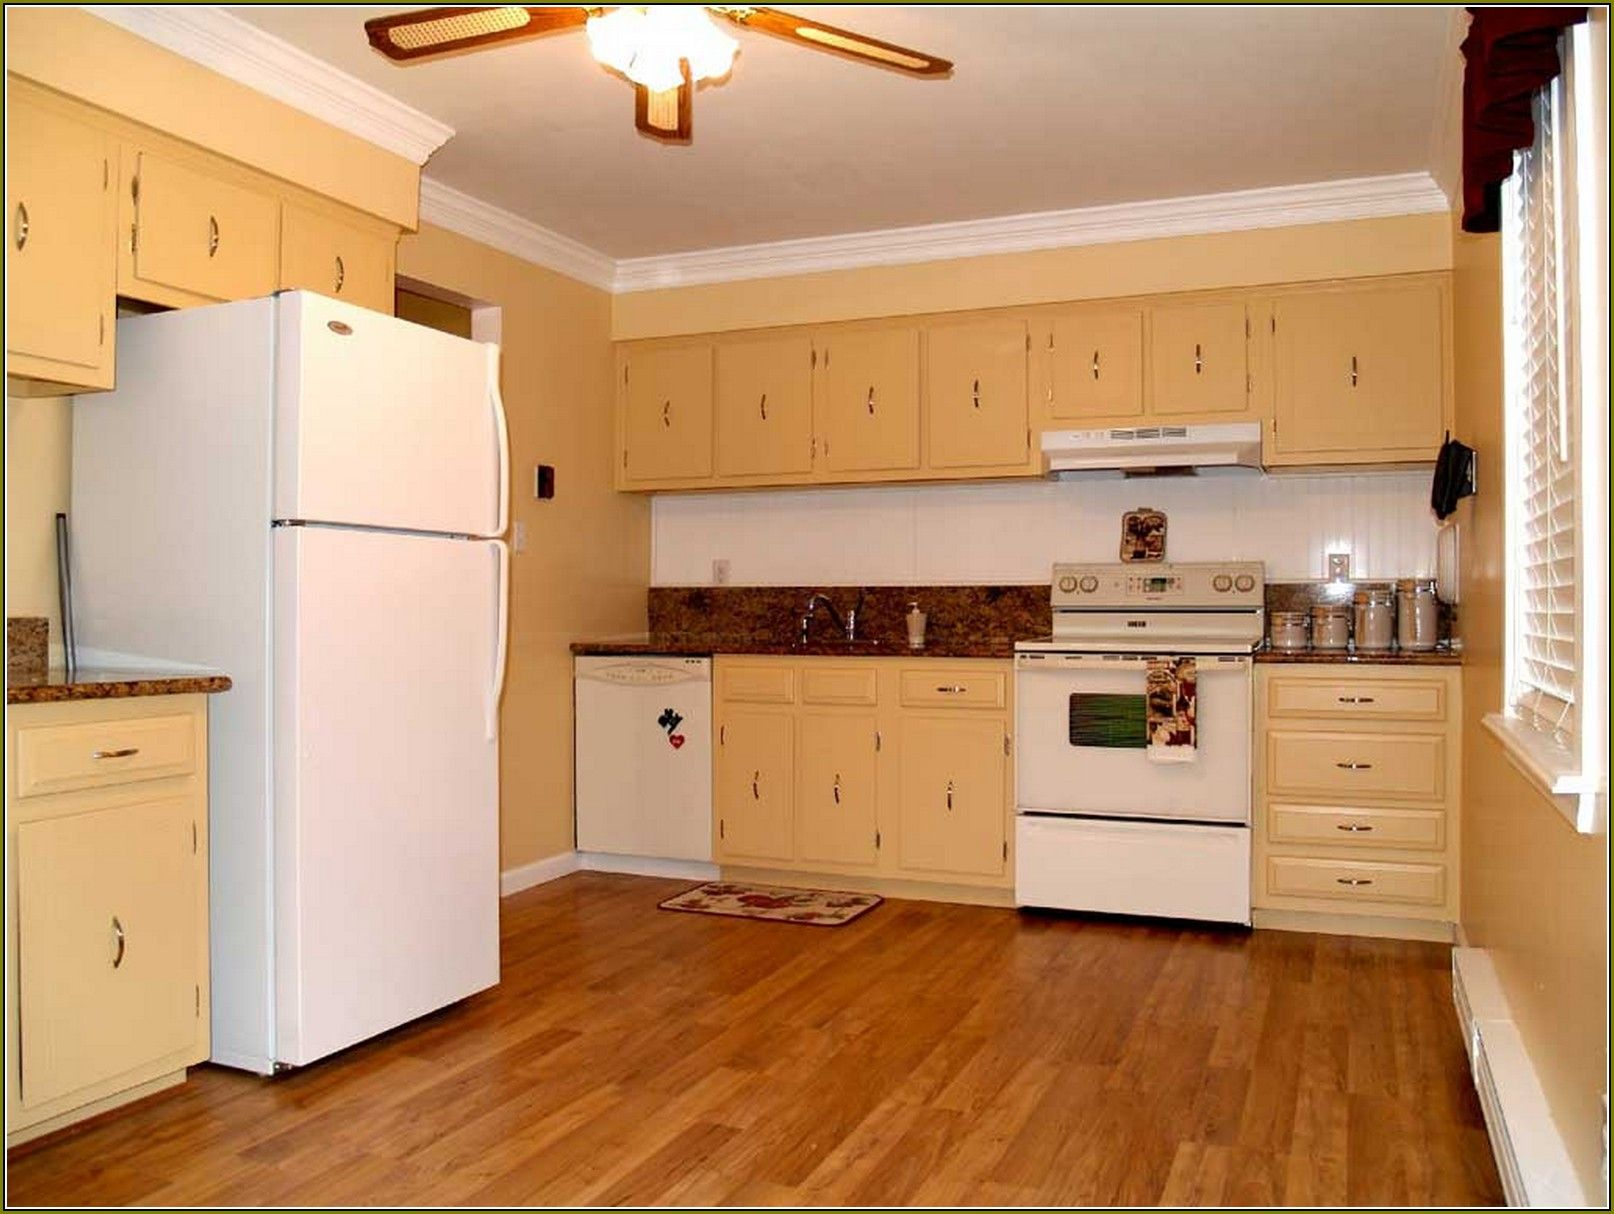 Your Home Improvements Refference Diy Plywood Kitchen Cabinets Ana White Quot Wall Cabinet Projects